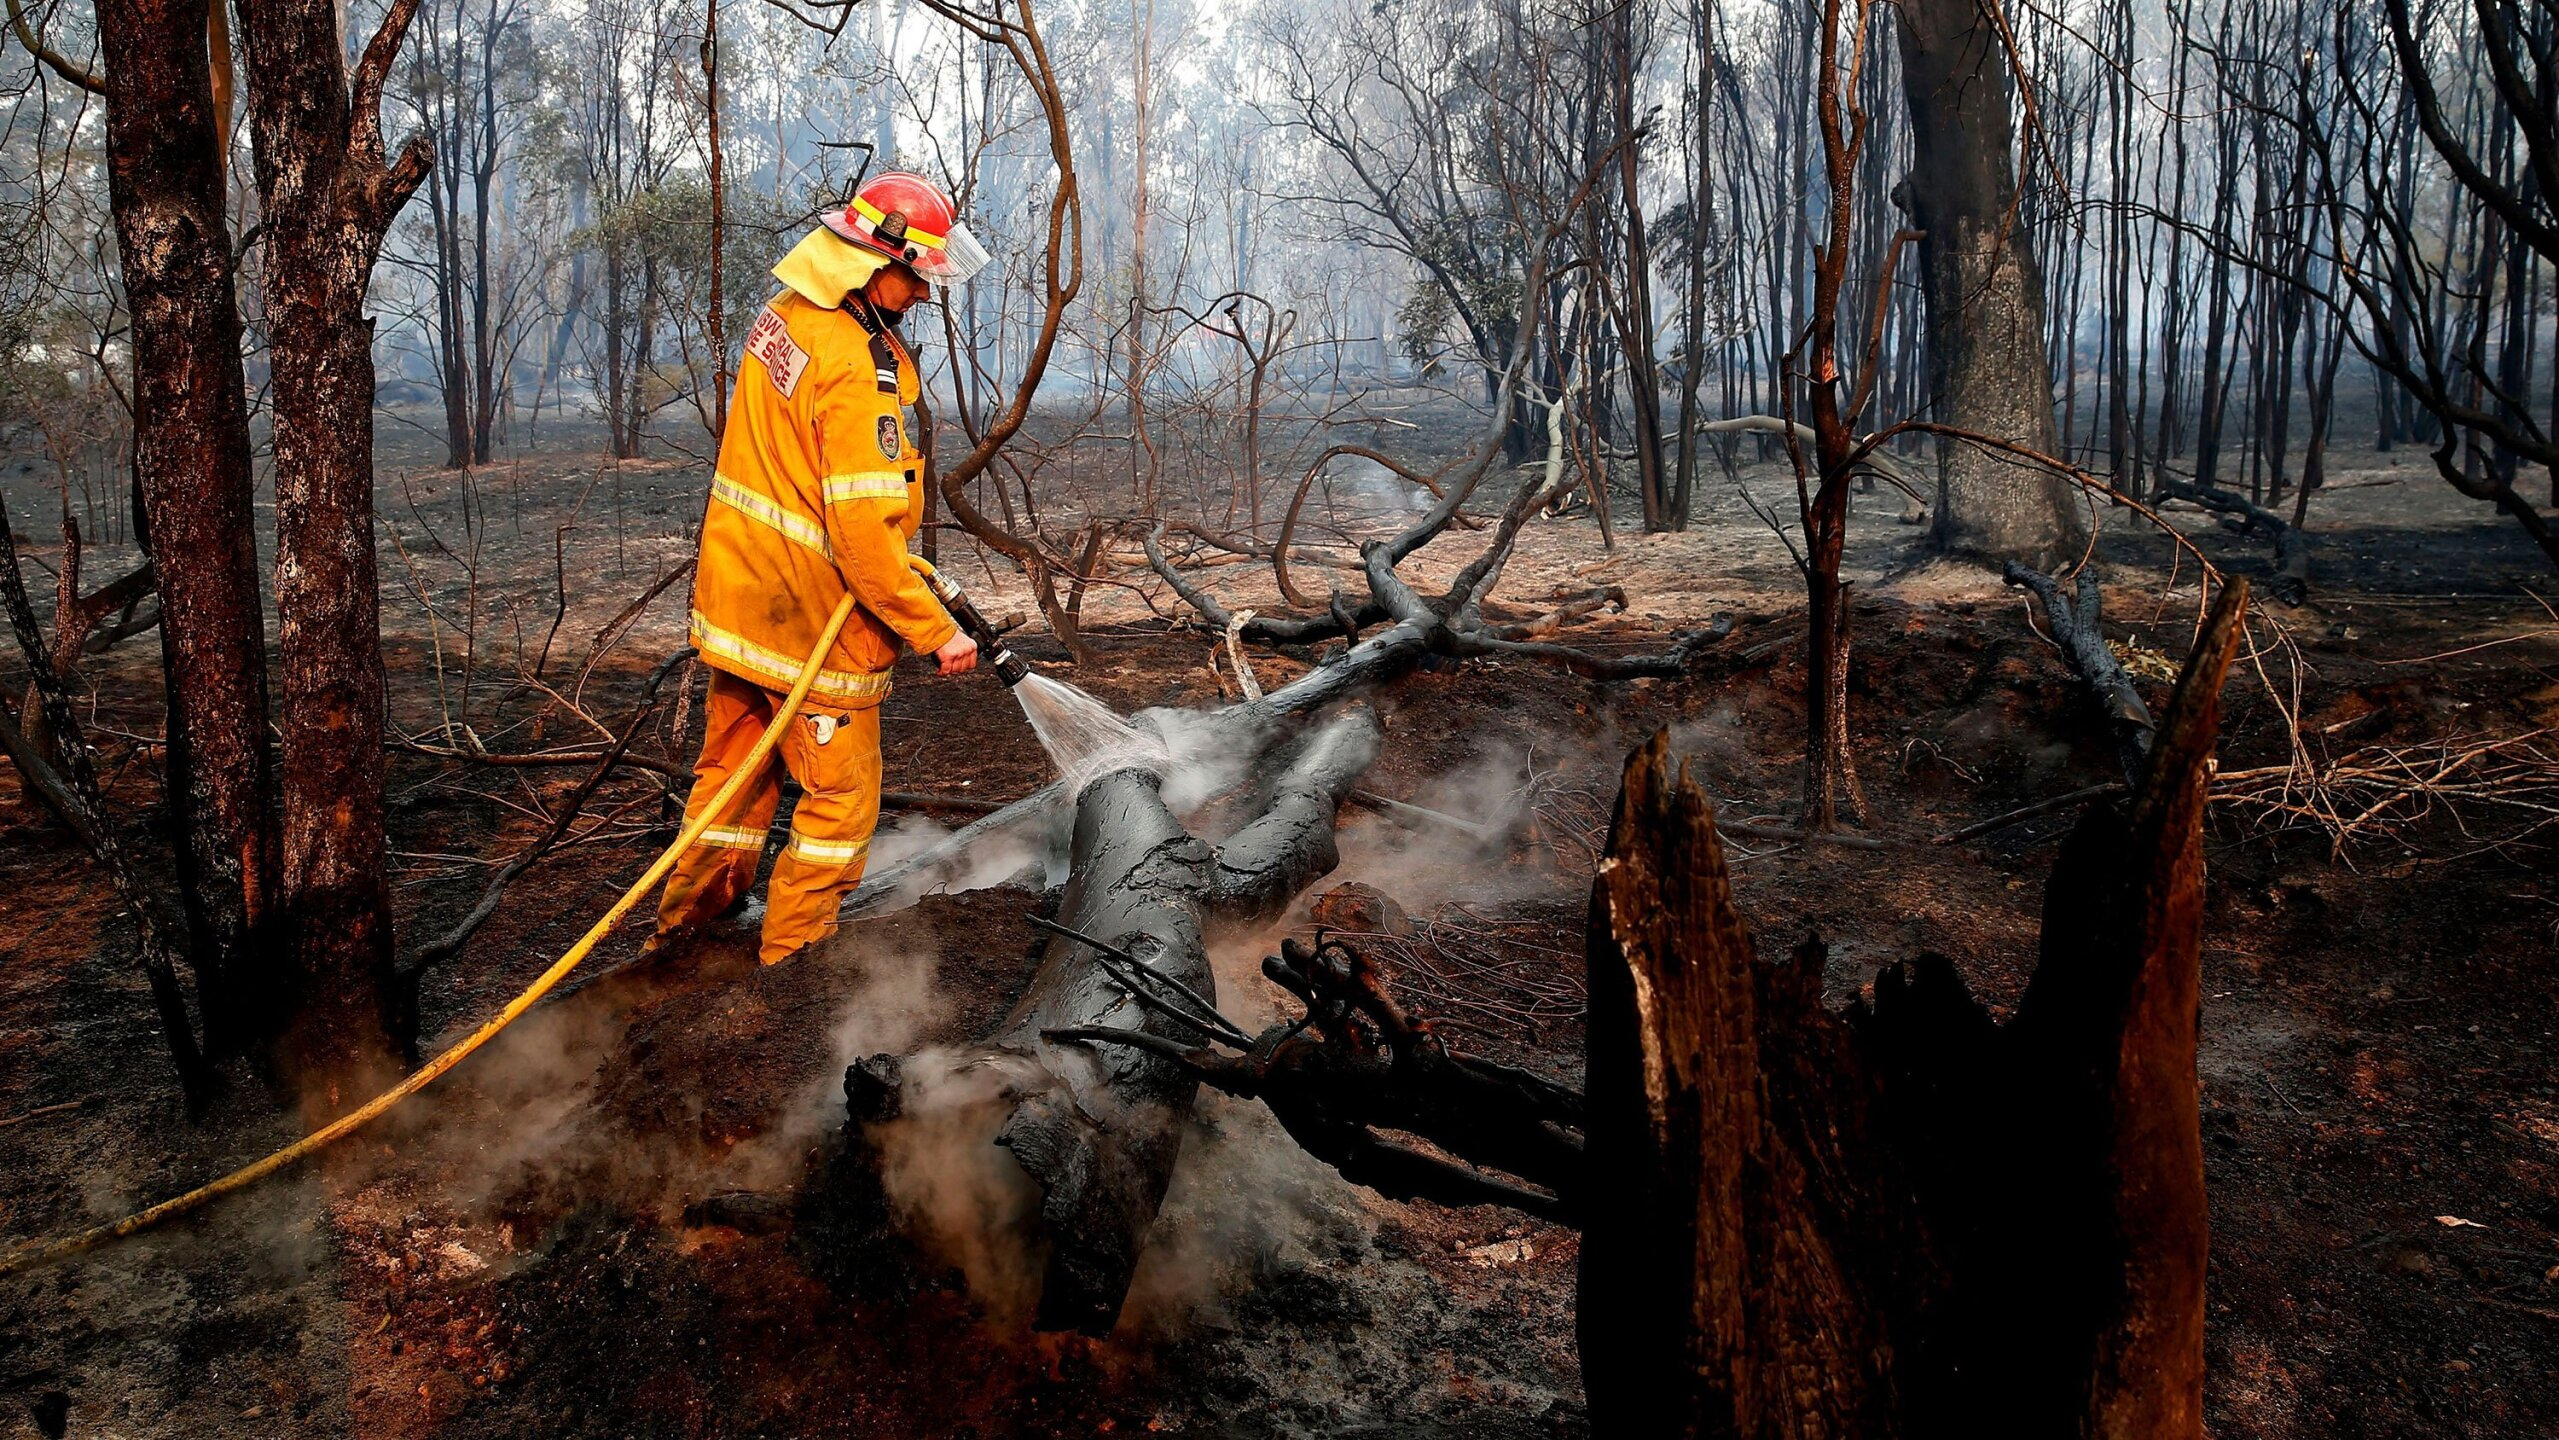 Photos: More than 60 bushfires are burning in the state of New South Wales inAustralia